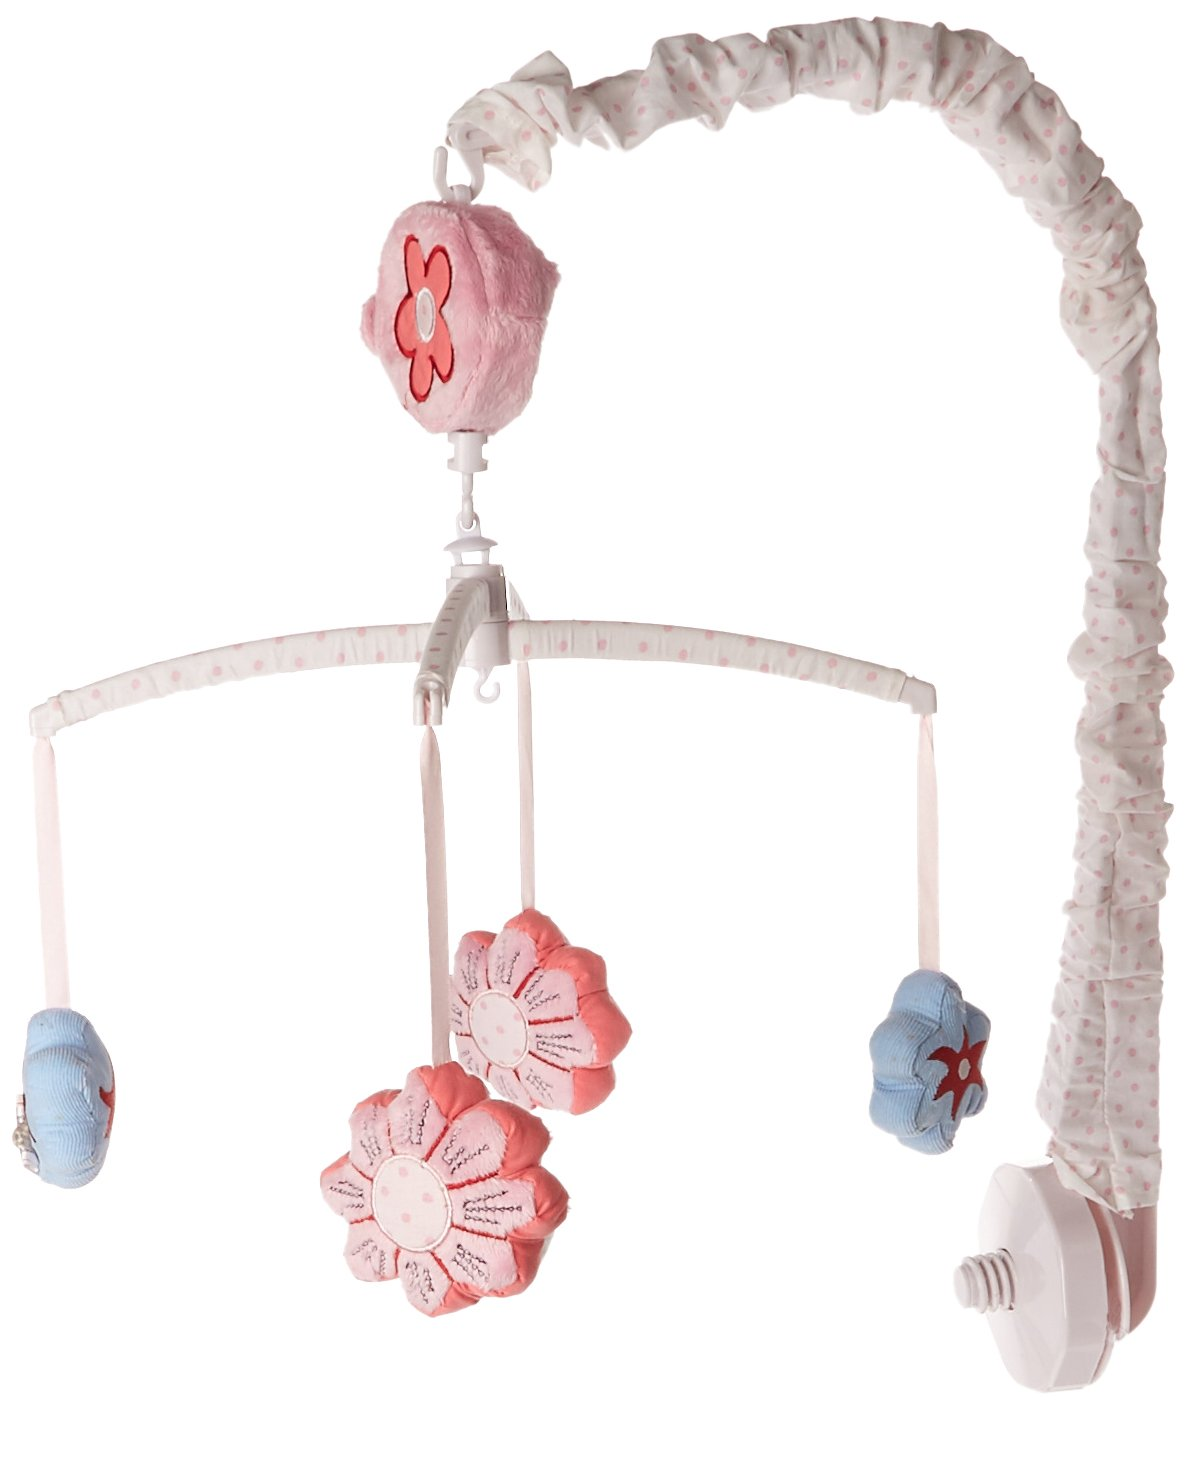 Beansprout Camille Mobile, Pink/White (Discontinued by Manufacturer)